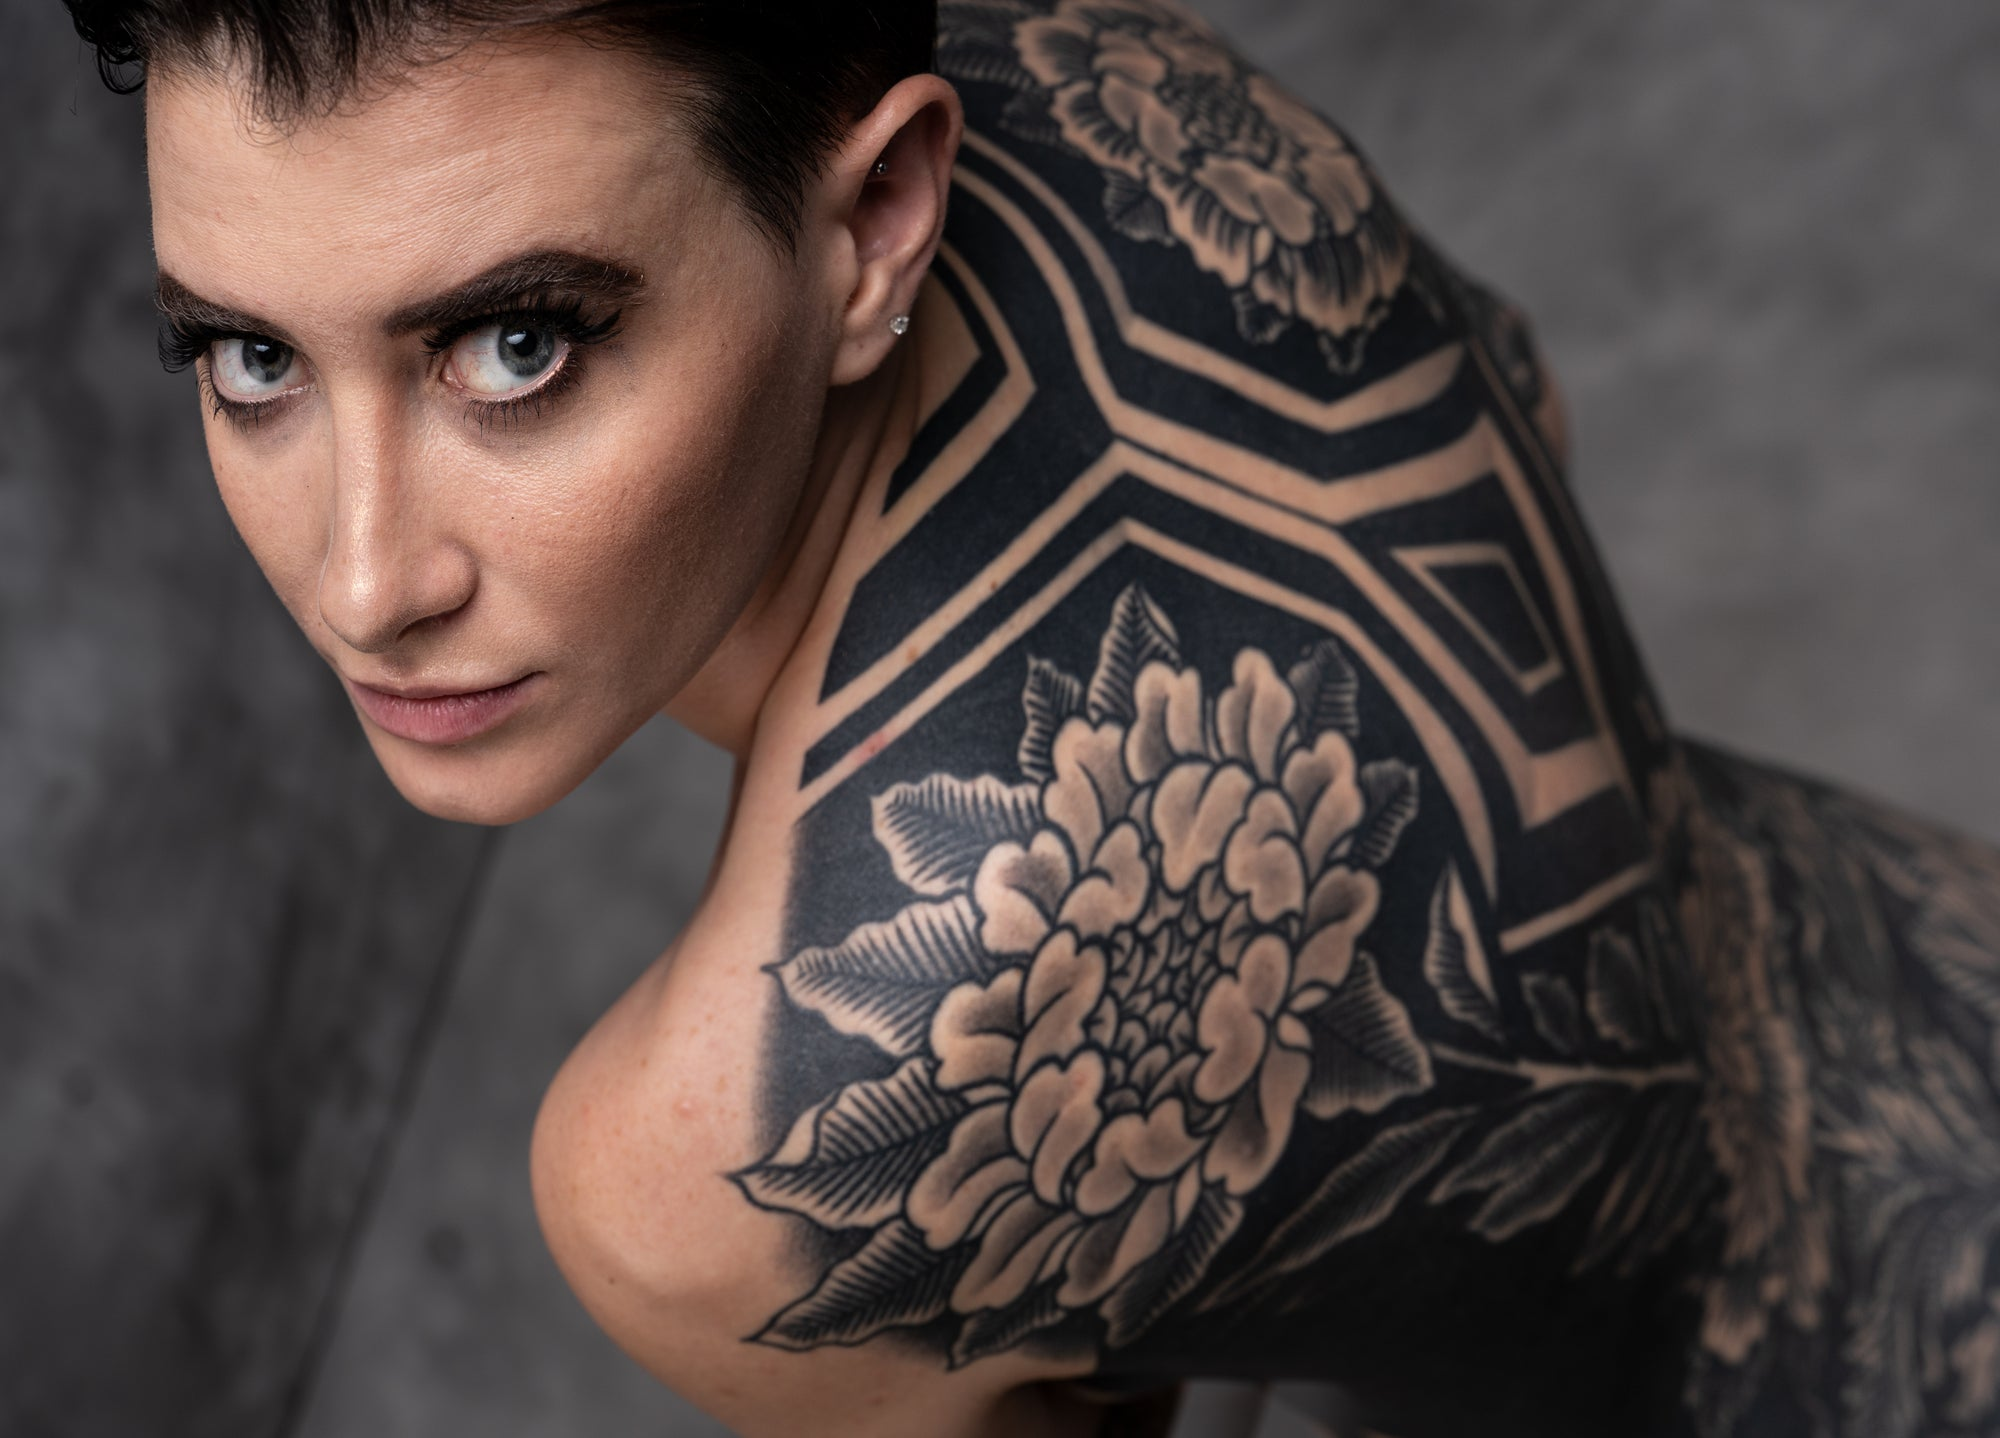 Image from All of Me Is Illustrated, image of woman's tatooed back